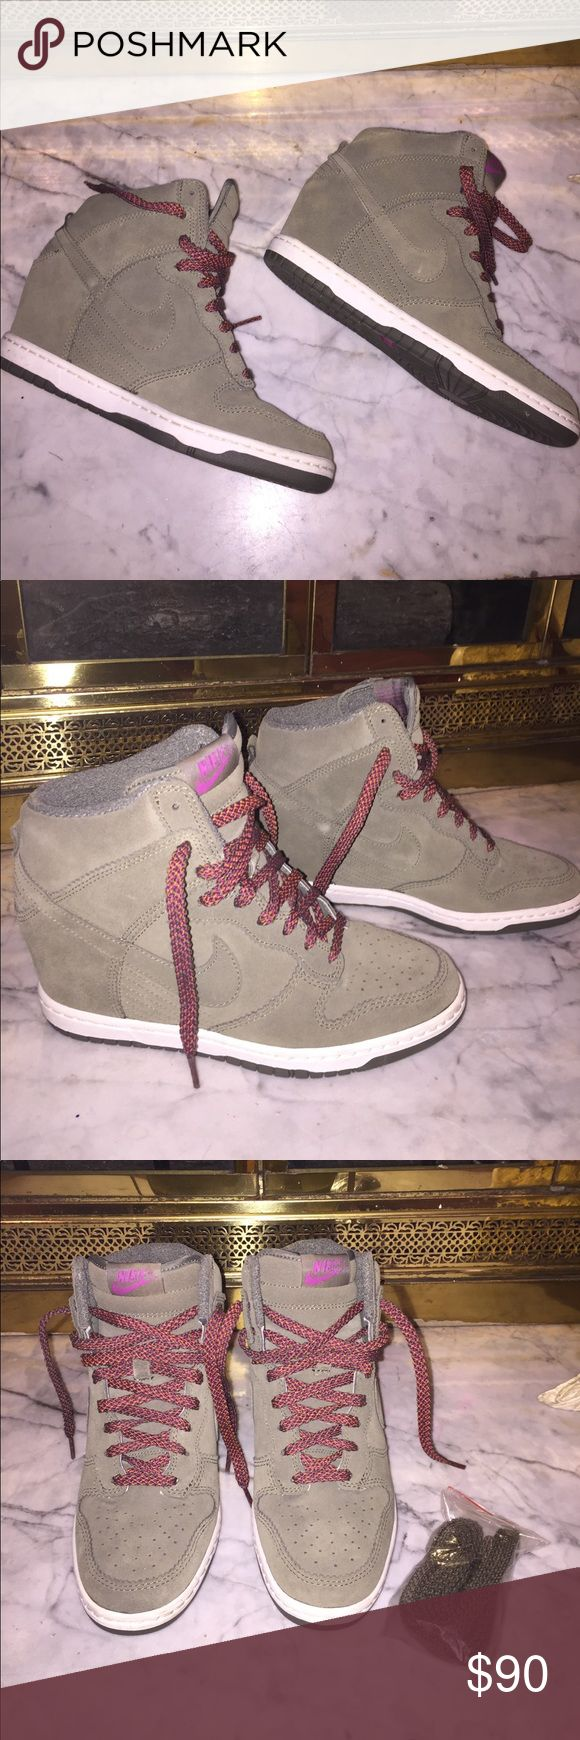 Women's Nike Dunk Sky Hi Excellent Condition! These are sneaker wedges and come with box and extra set of laces. Only worn 4x, basically brand new. Nike Shoes Sneakers